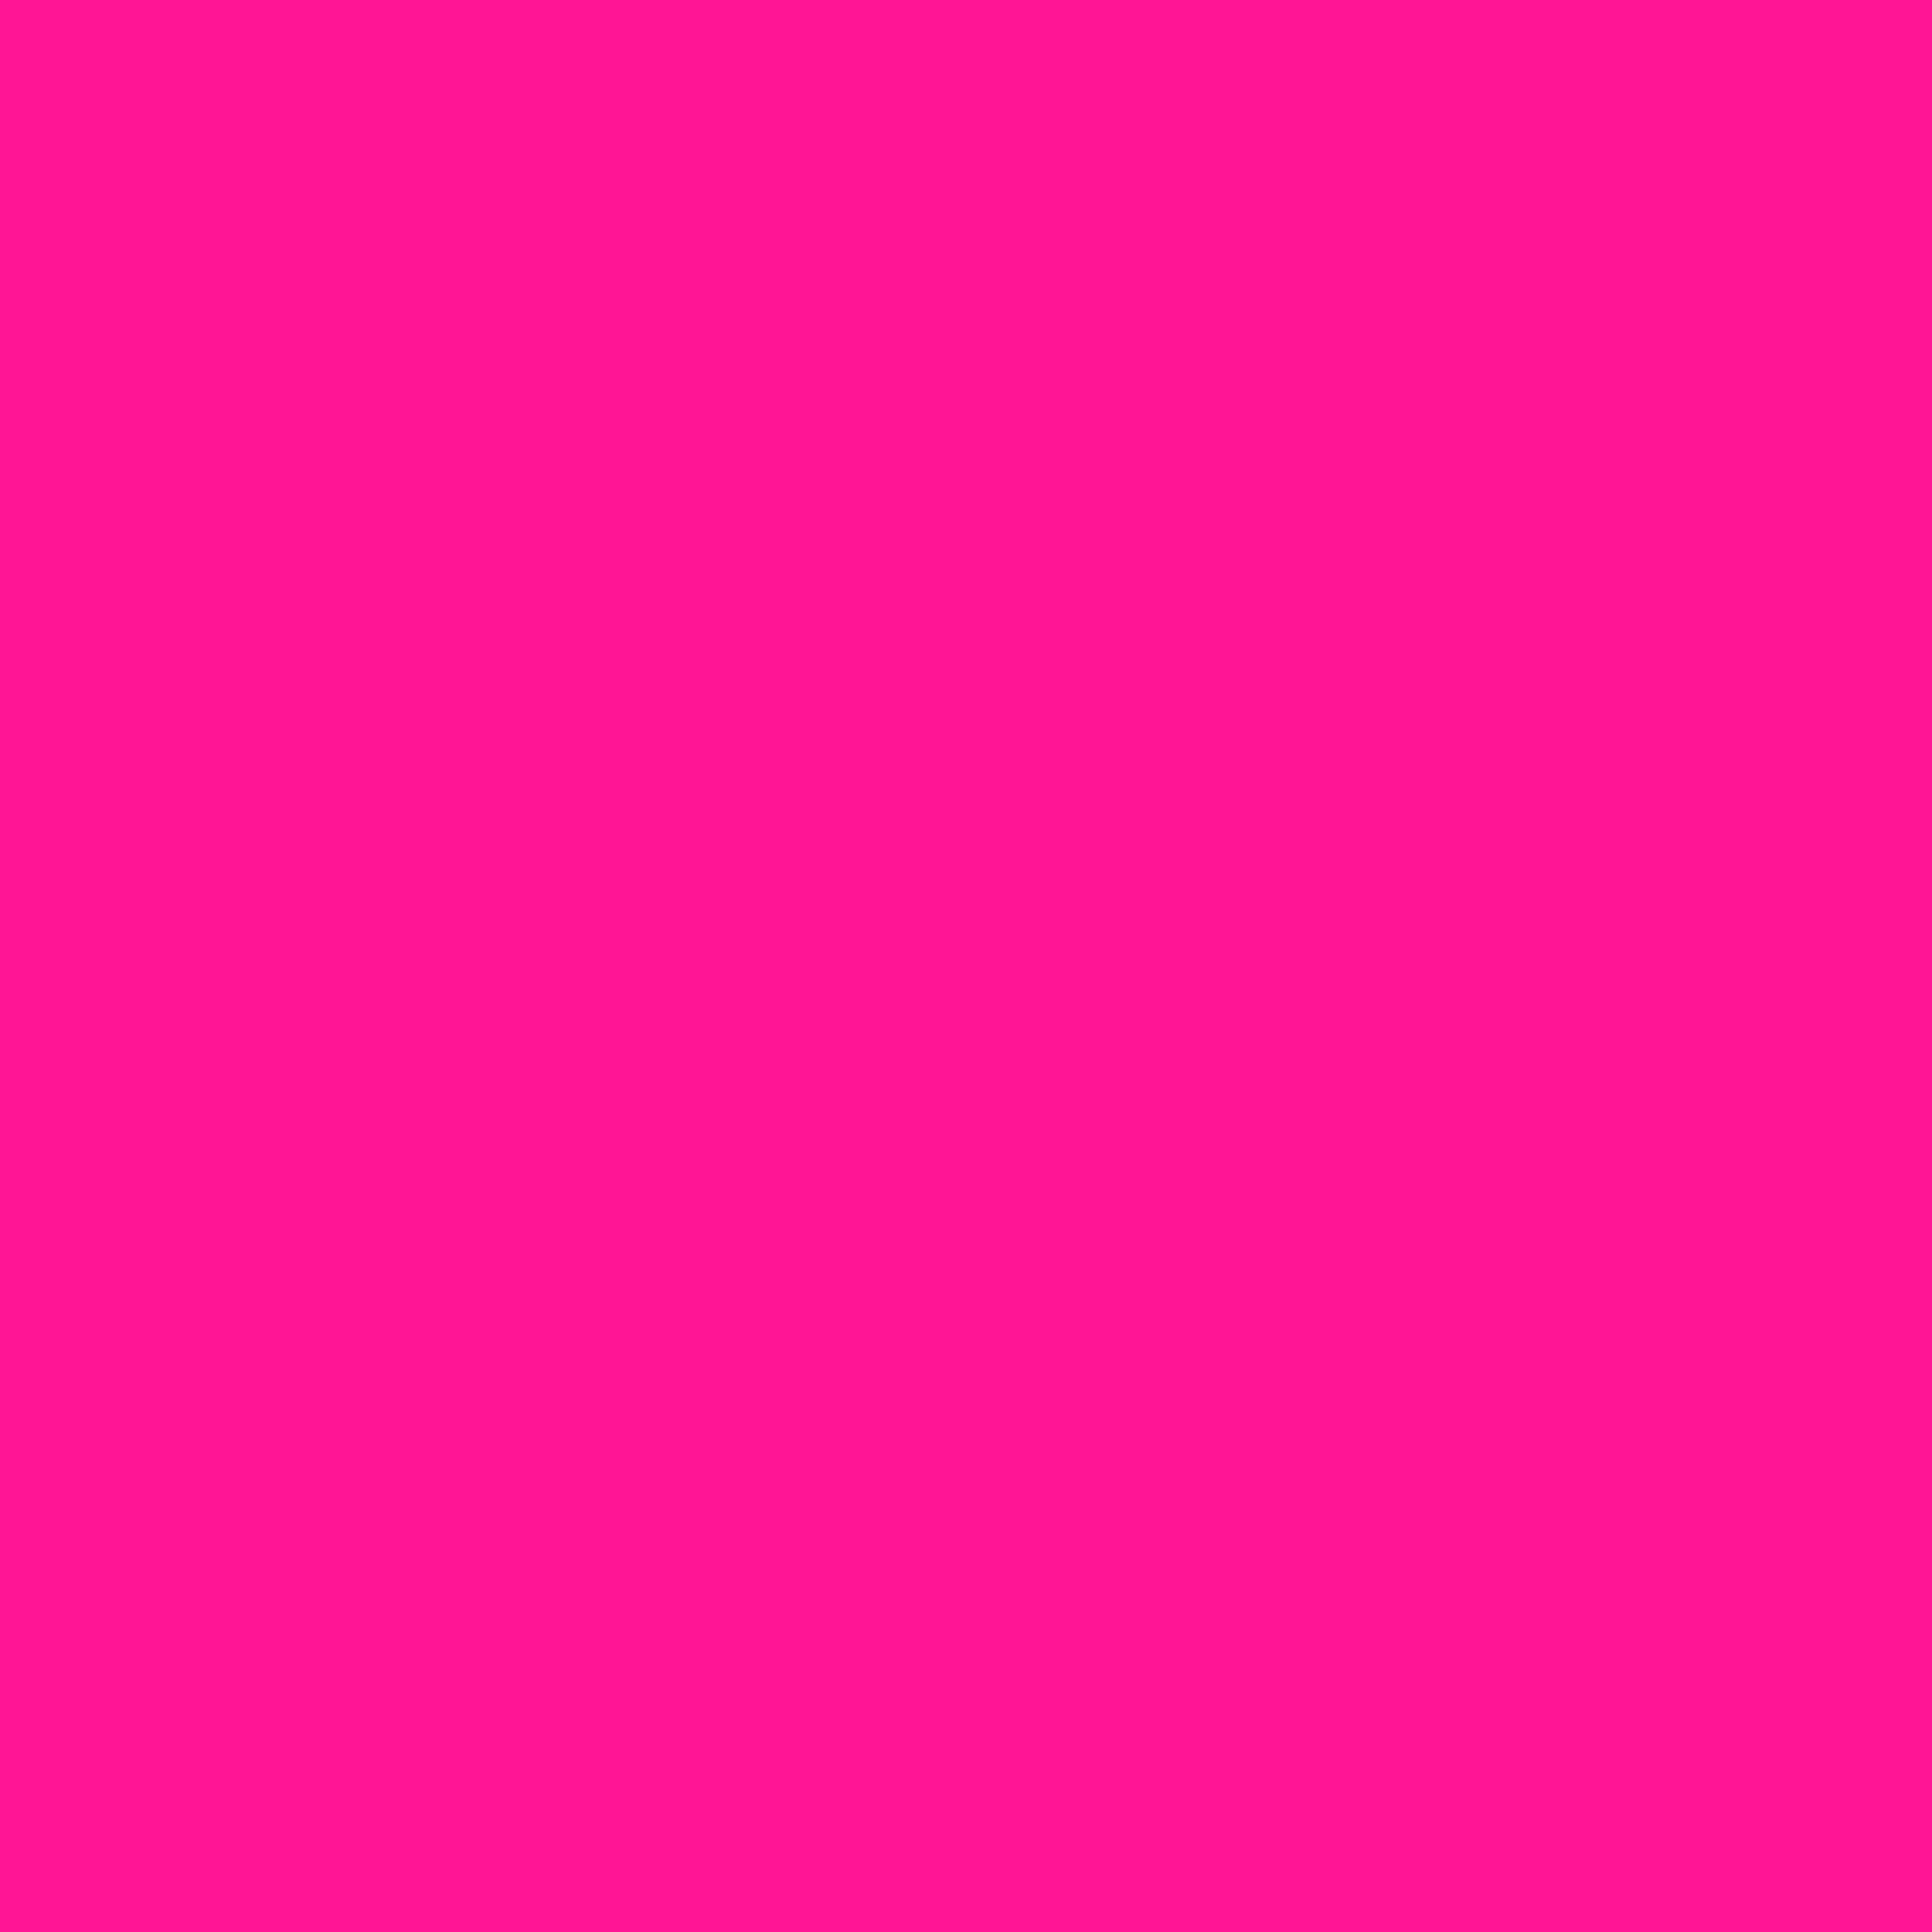 2048x2048 Deep Pink Solid Color Background